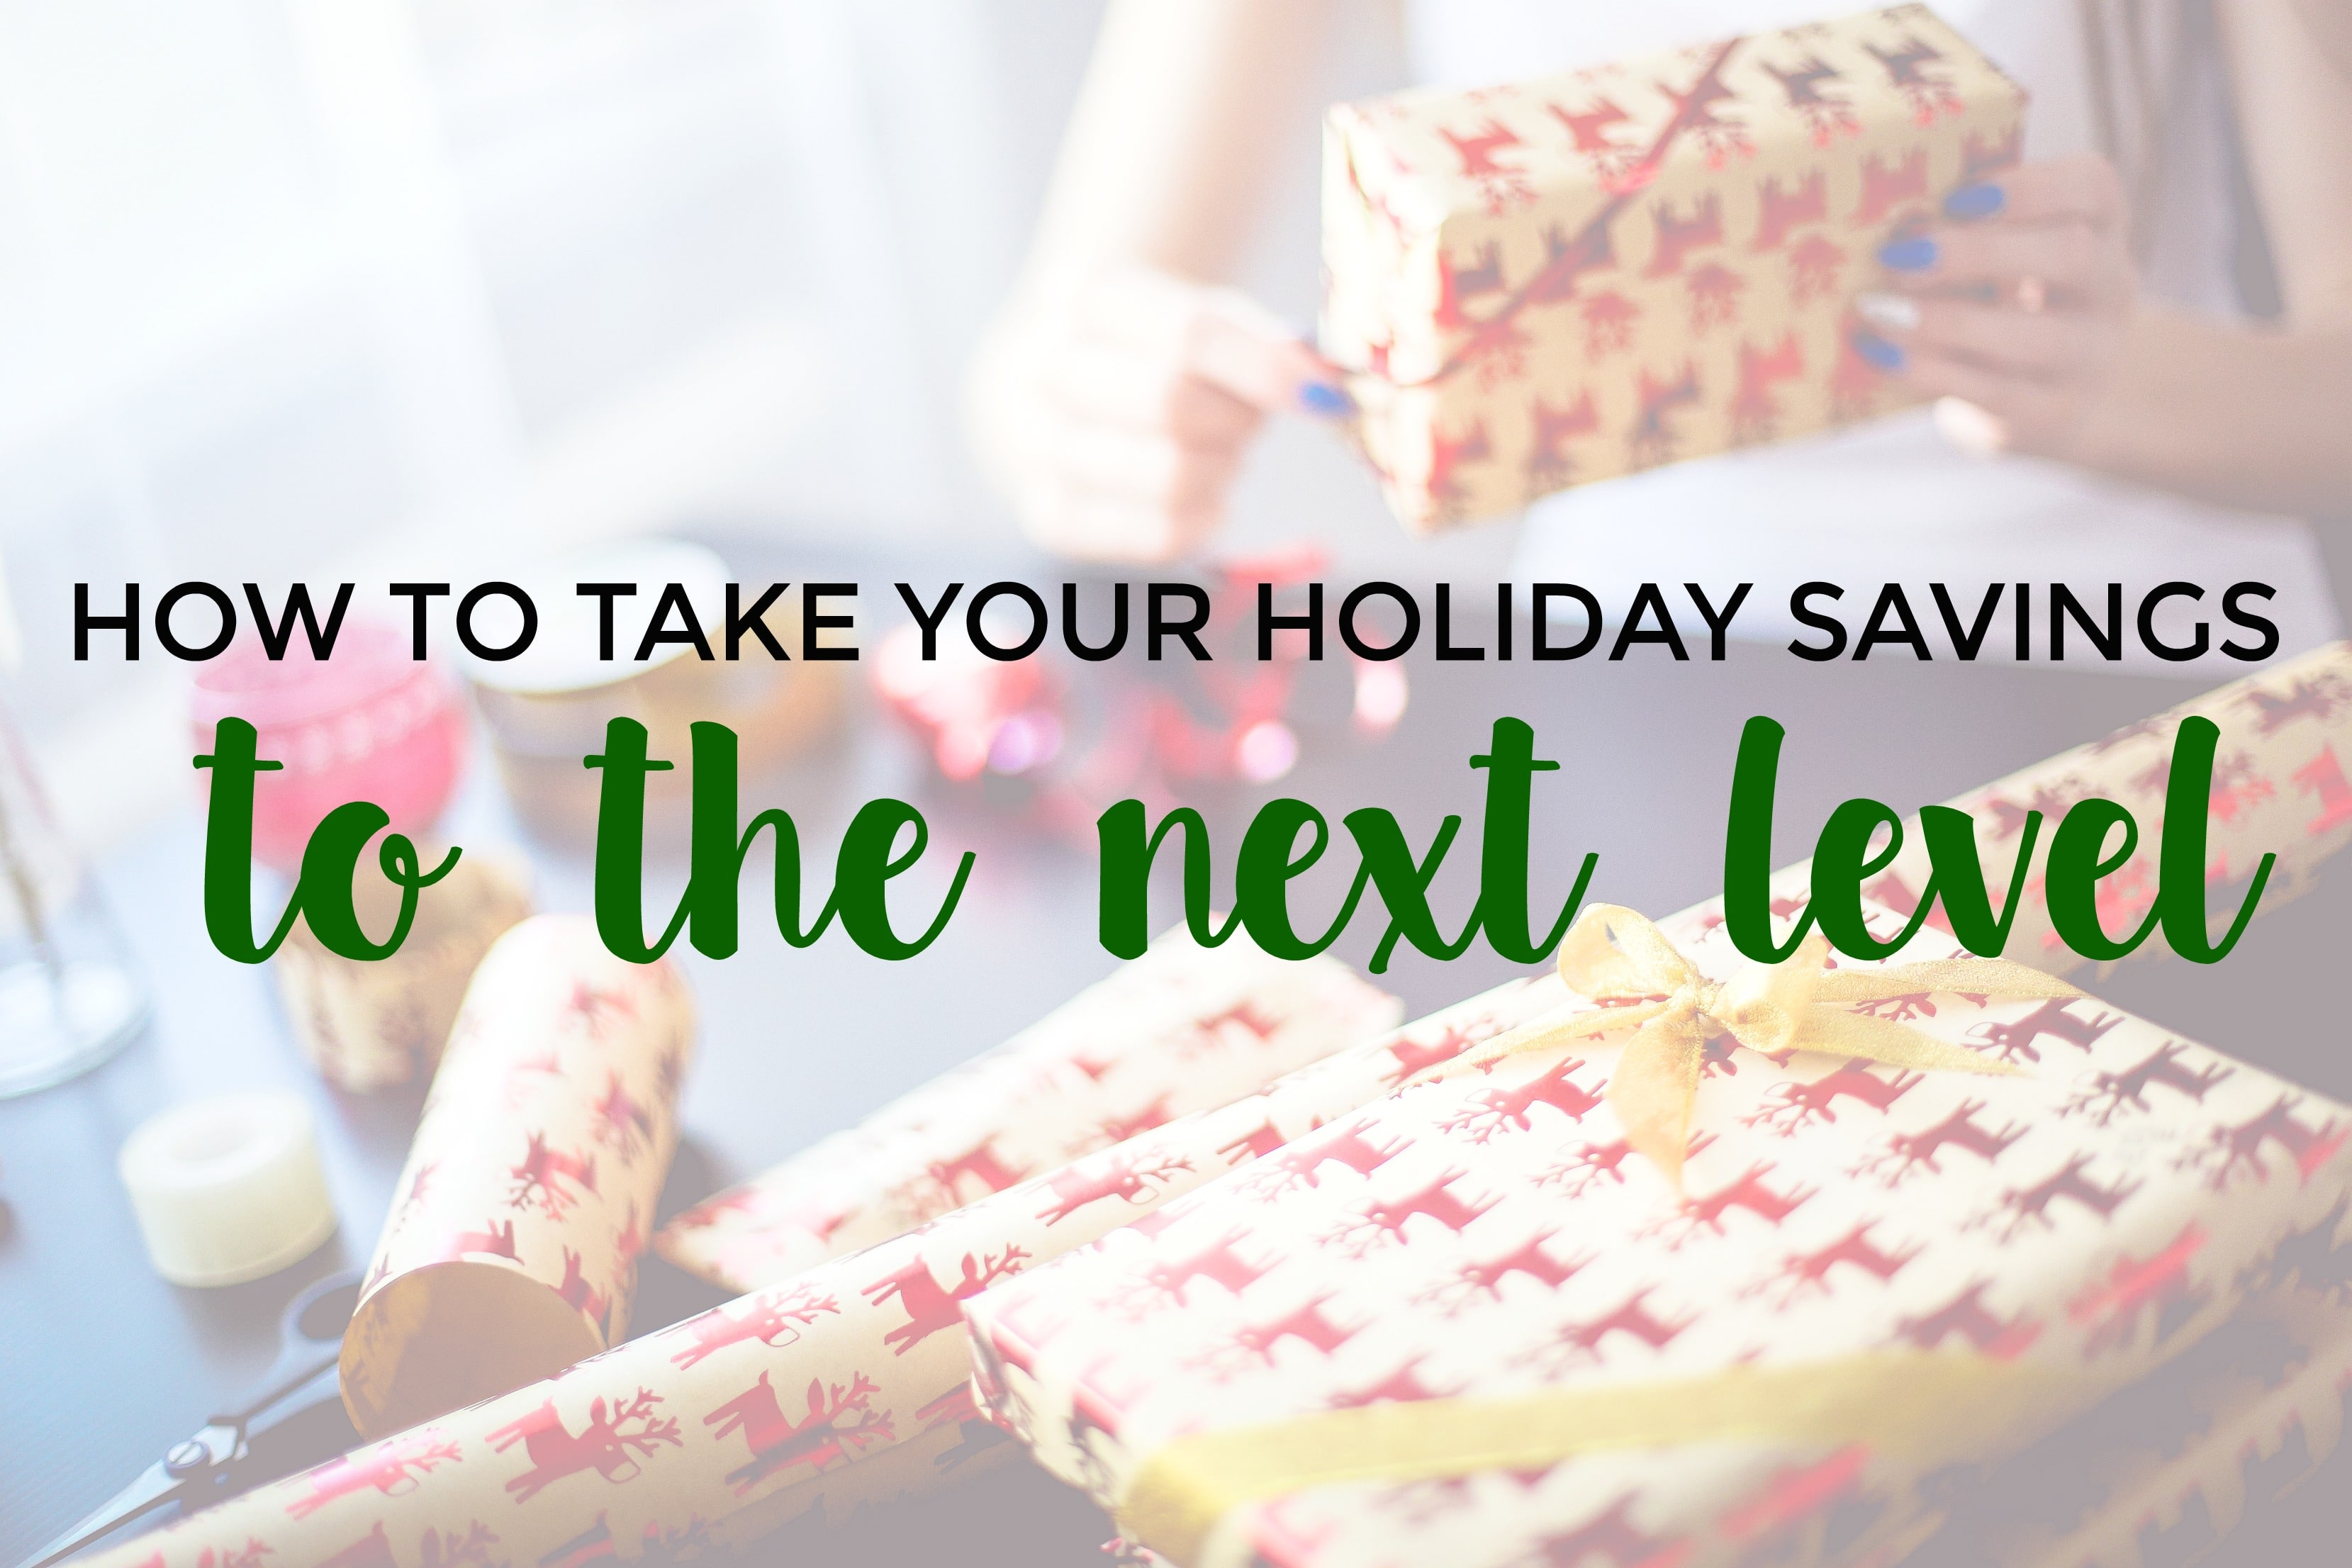 How to Take Your Holiday Savings to the Next Level